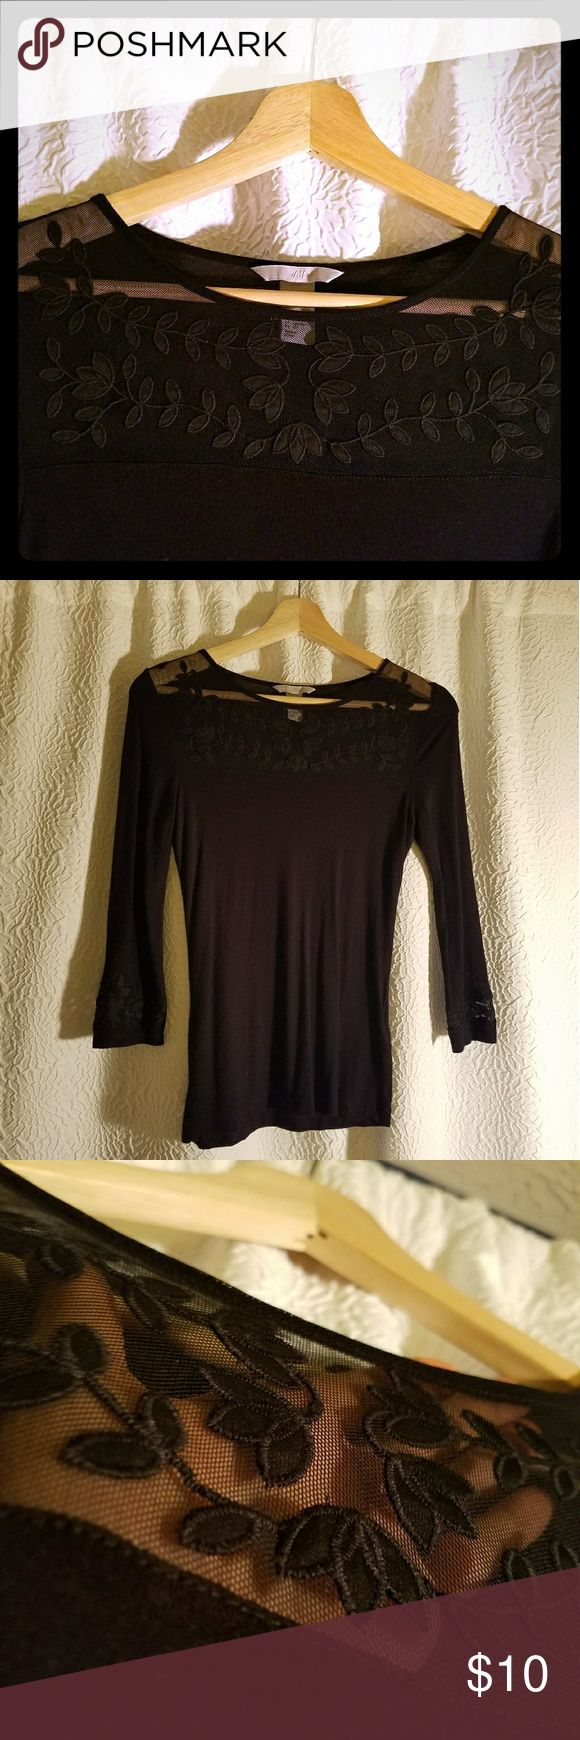 Black lace mesh embroidered 3/4 sleeve Pre-owned, great condition. Only worn 3 times! Unique sheer mesh embroidered collar, and same detail on the edge of both sleeves. Fitted, very soft and comfy. True black. H&M Tops Blouses